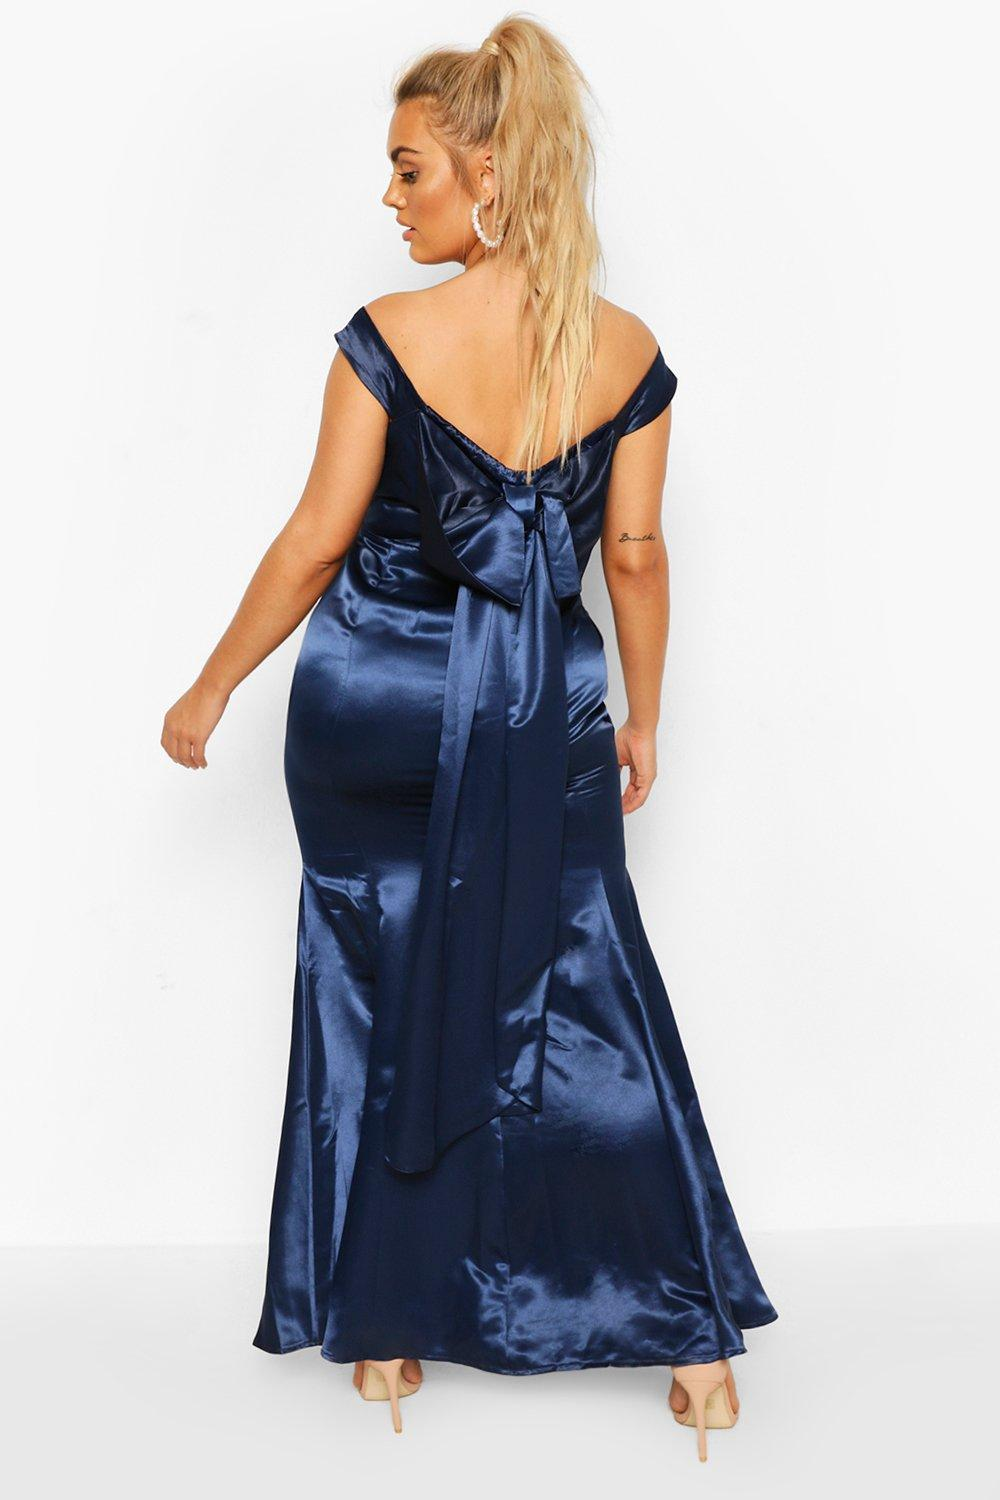 80s Dresses | Casual to Party Dresses Womens Plus Occasion Satin Bow Back Maxi Dress - Navy - 16 $28.00 AT vintagedancer.com